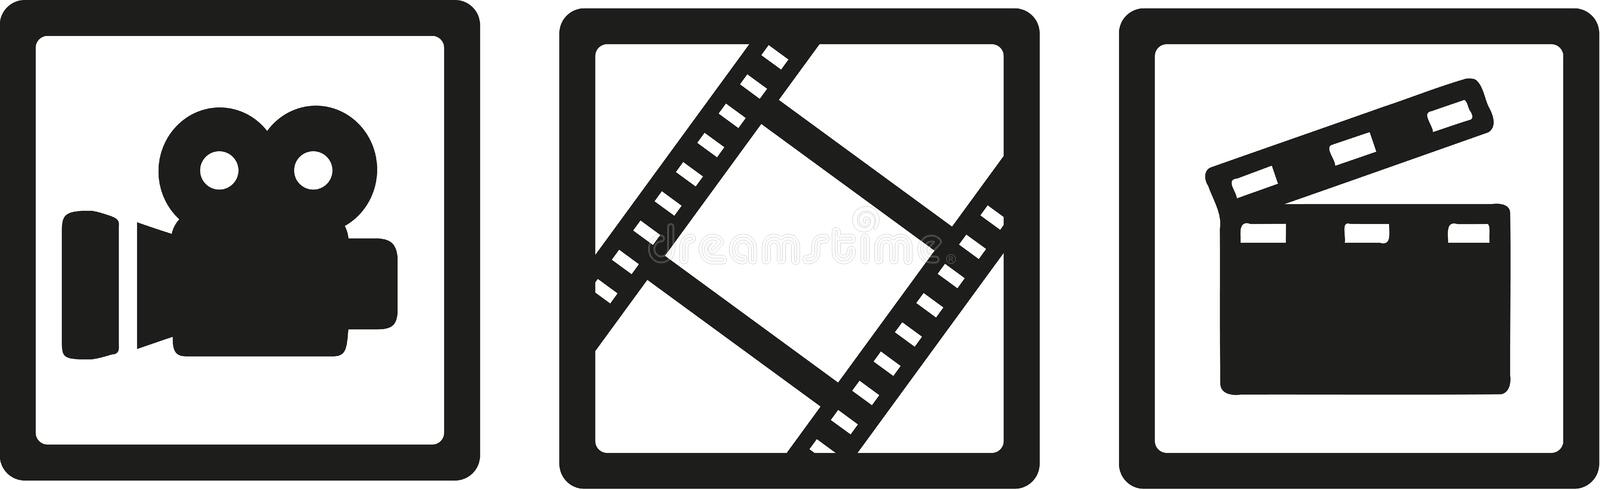 Movie cinema icons - camera, film reel and clapperboard stock illustration